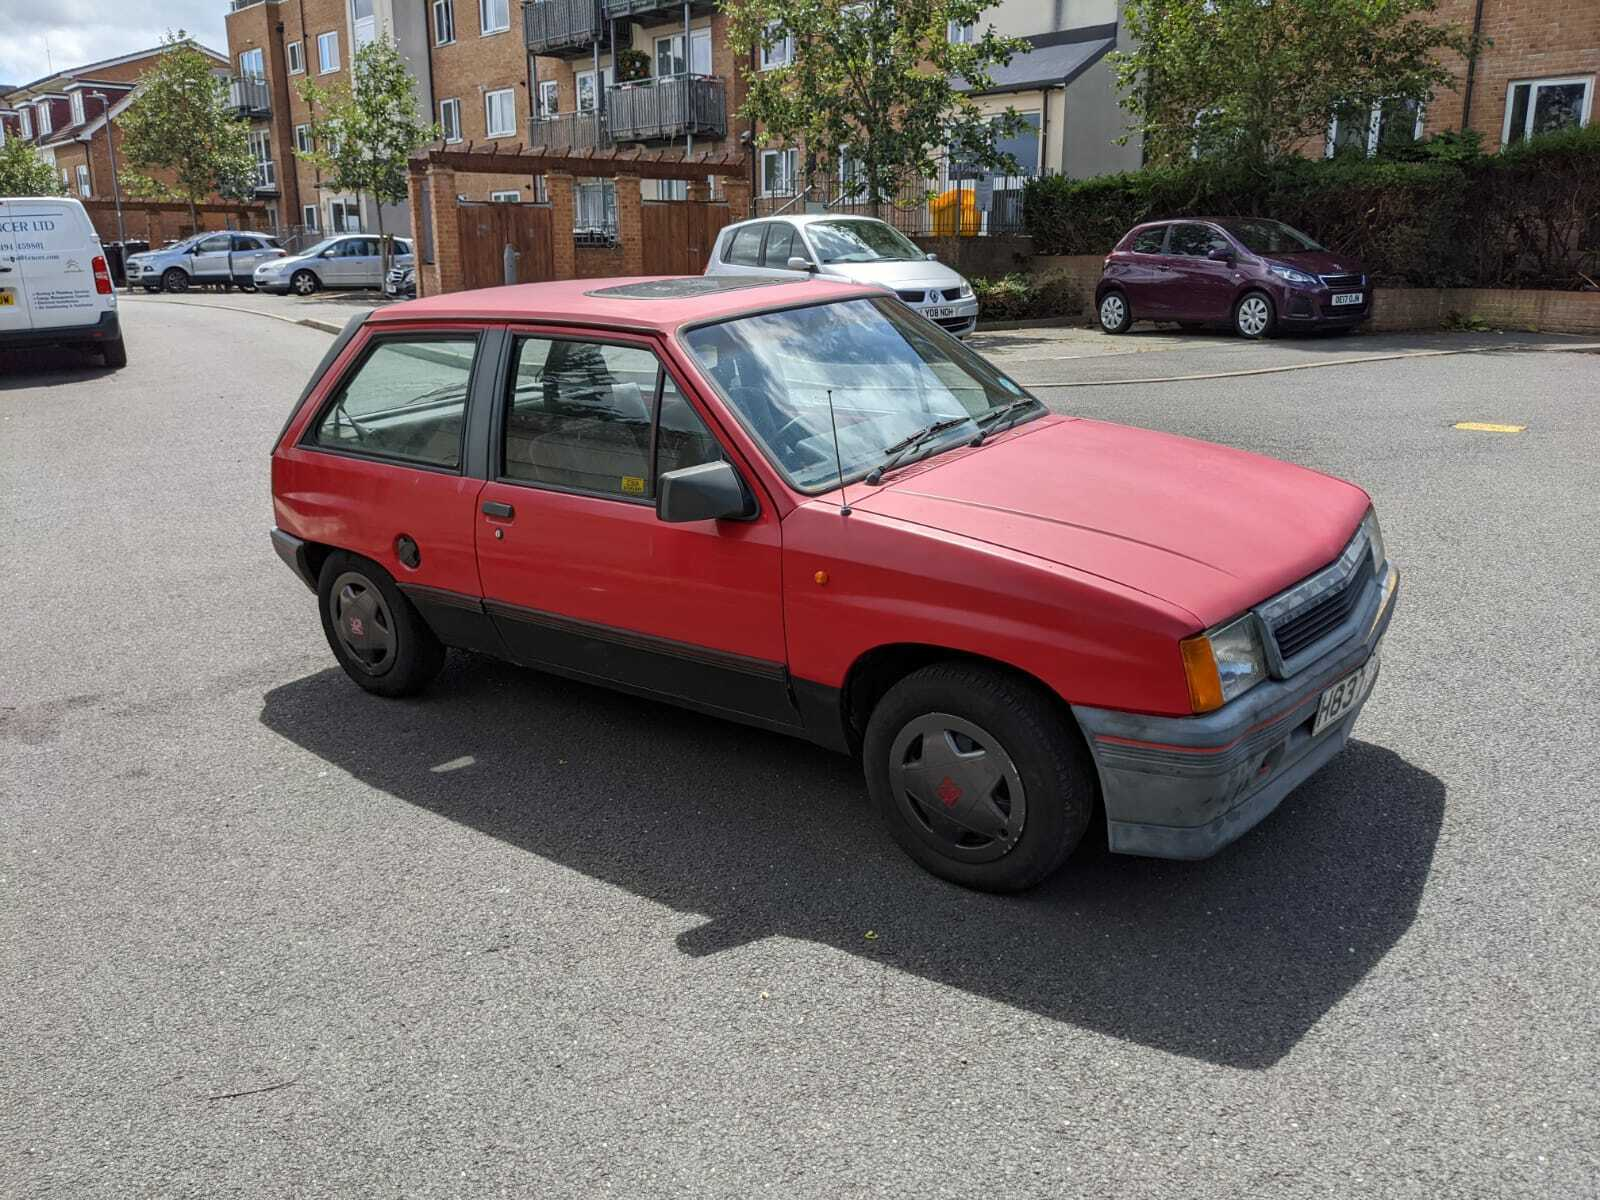 1990-VAUXHALL-NOVA-SR-14-SPARES-OR-REPAIR-STARTS-AND-DRIVES